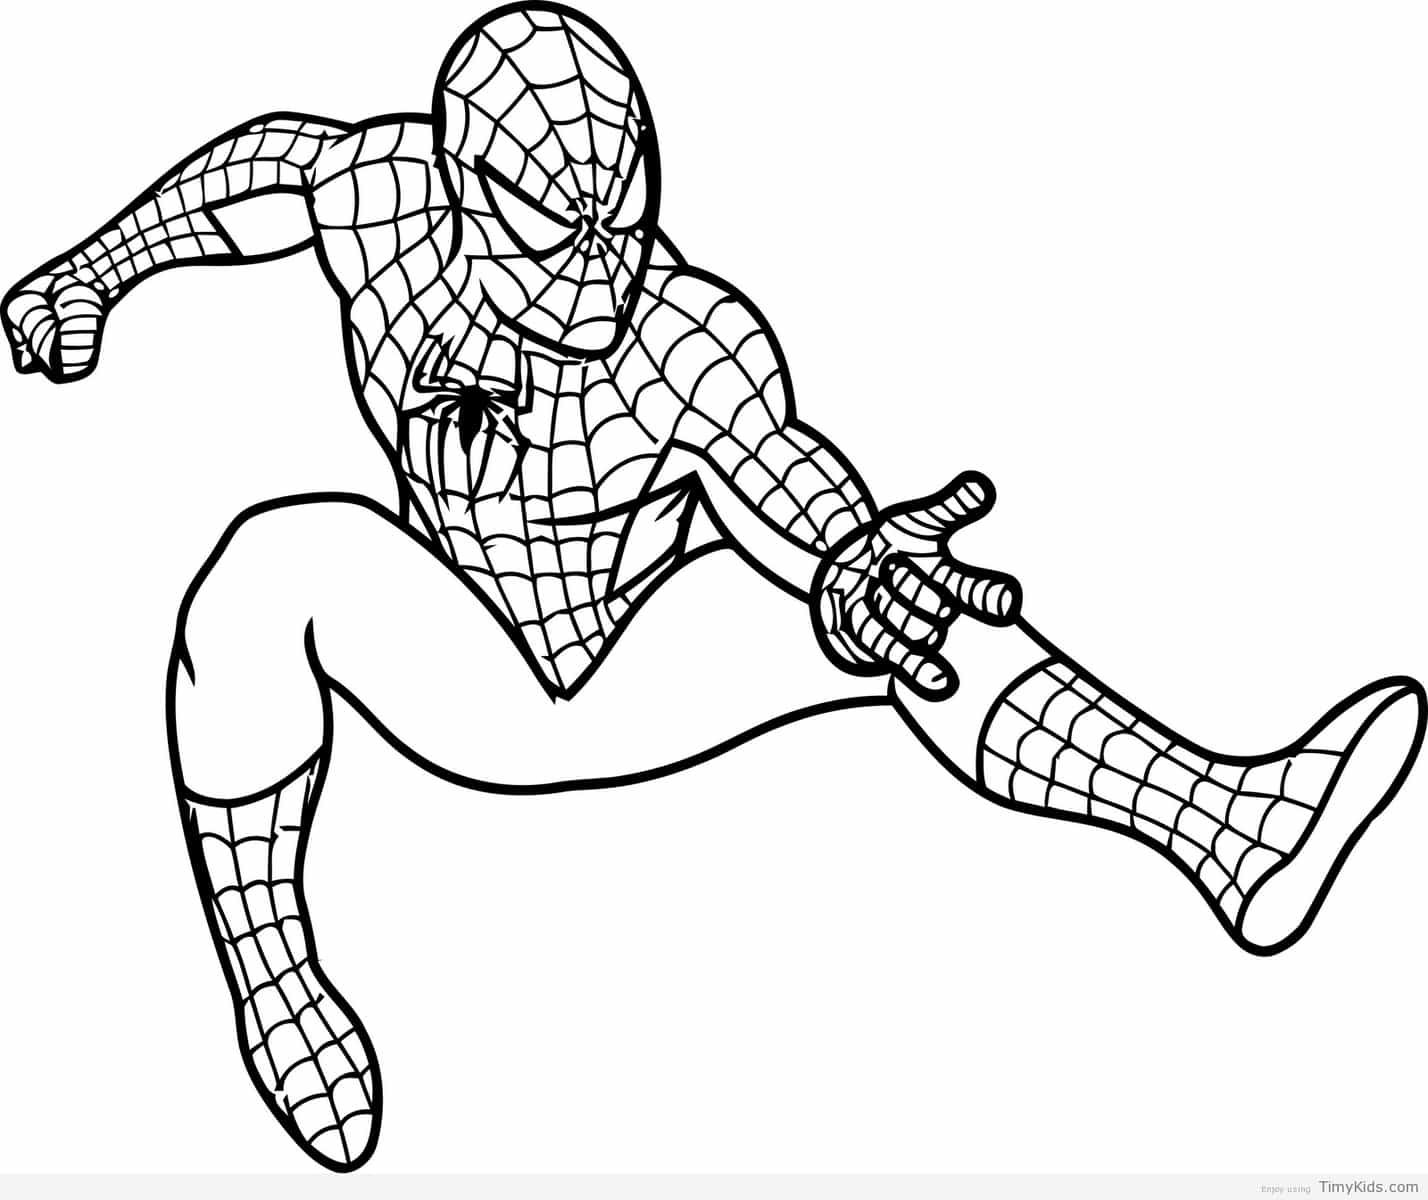 http://timykids.com/spiderman-drawing-for-kids.html | Colorings ...